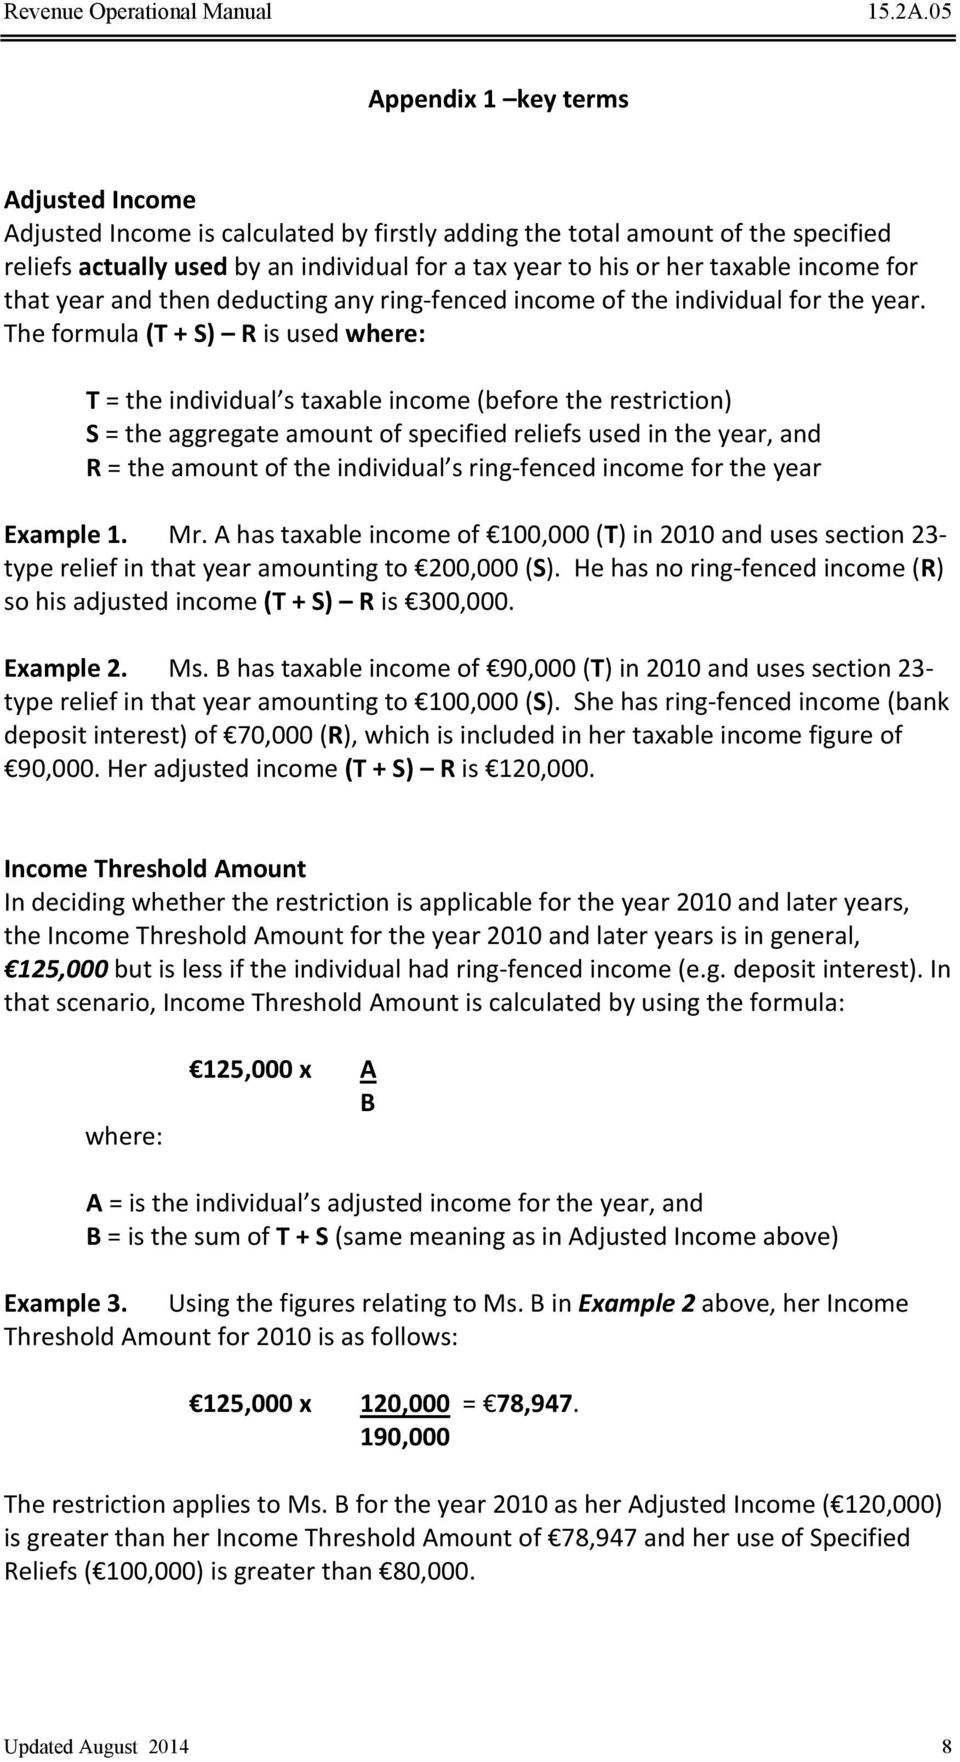 The formula (T + S) R is used where: T = the individual s taxable income (before the restriction) S = the aggregate amount of specified reliefs used in the year, and R = the amount of the individual